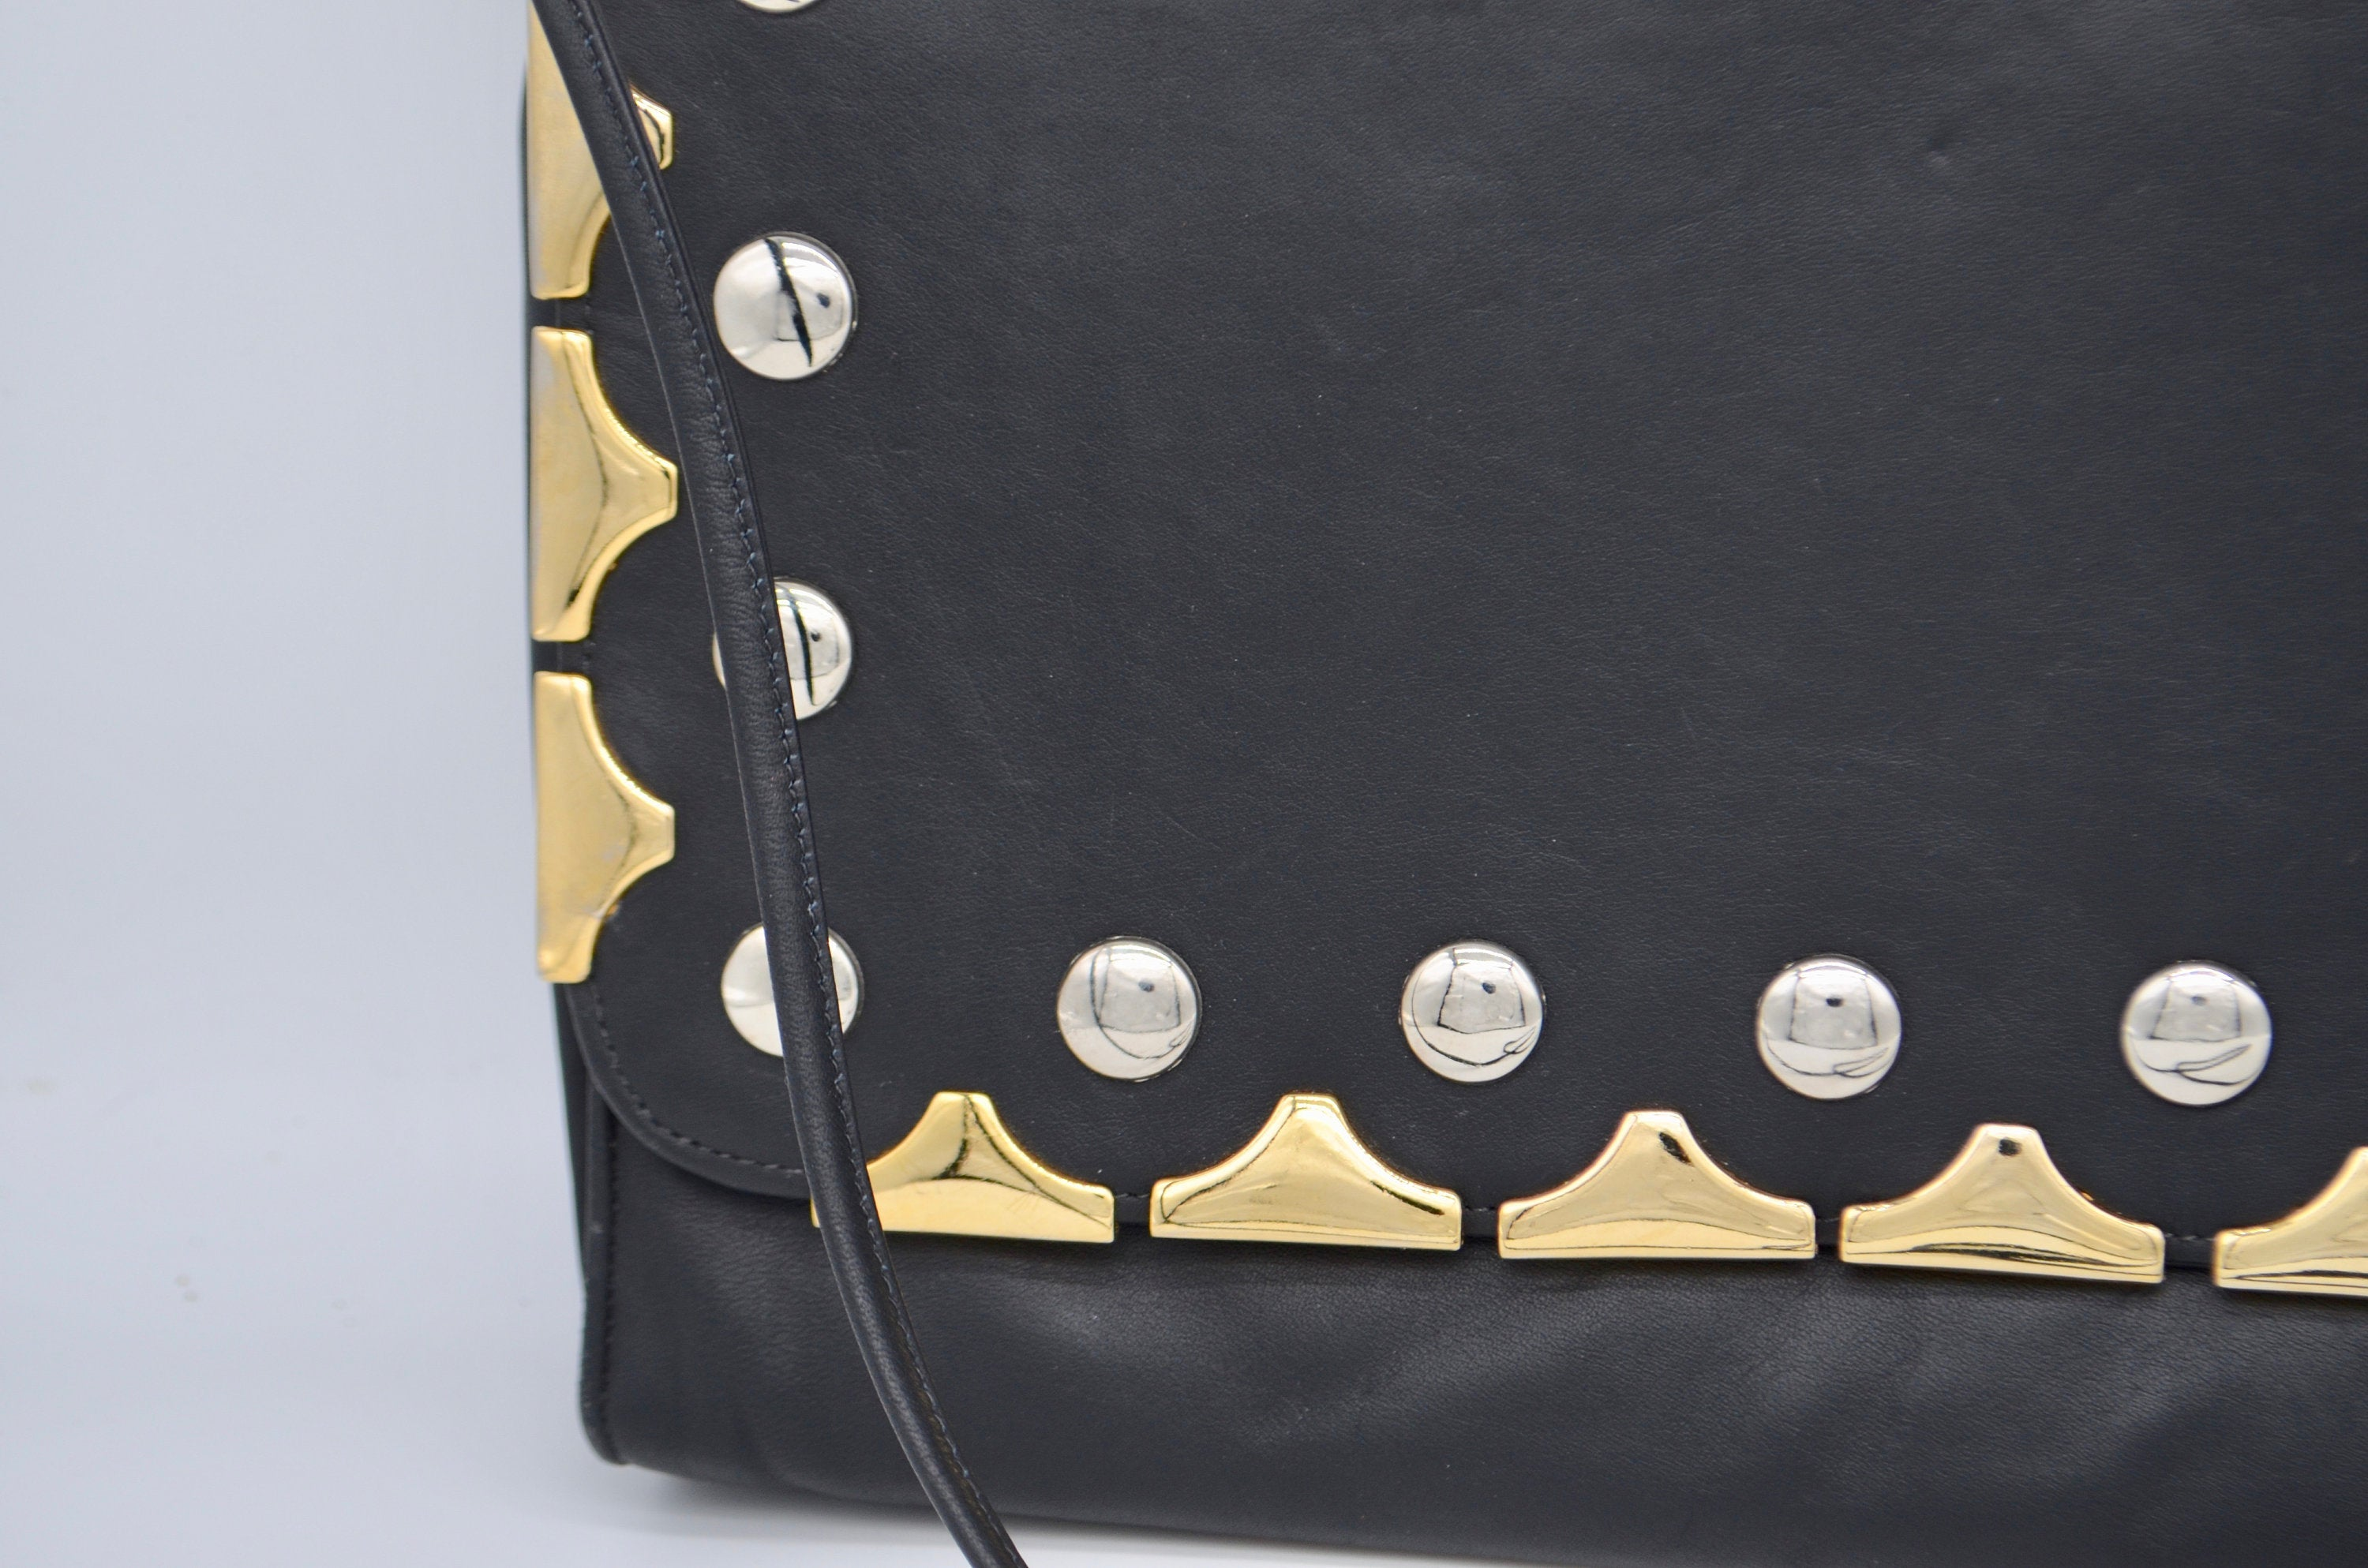 1990 Jenny Tee Black Leather Oversized Clutch Purse Gold & Silver Studs Spaghetti Strap Shoulderbag